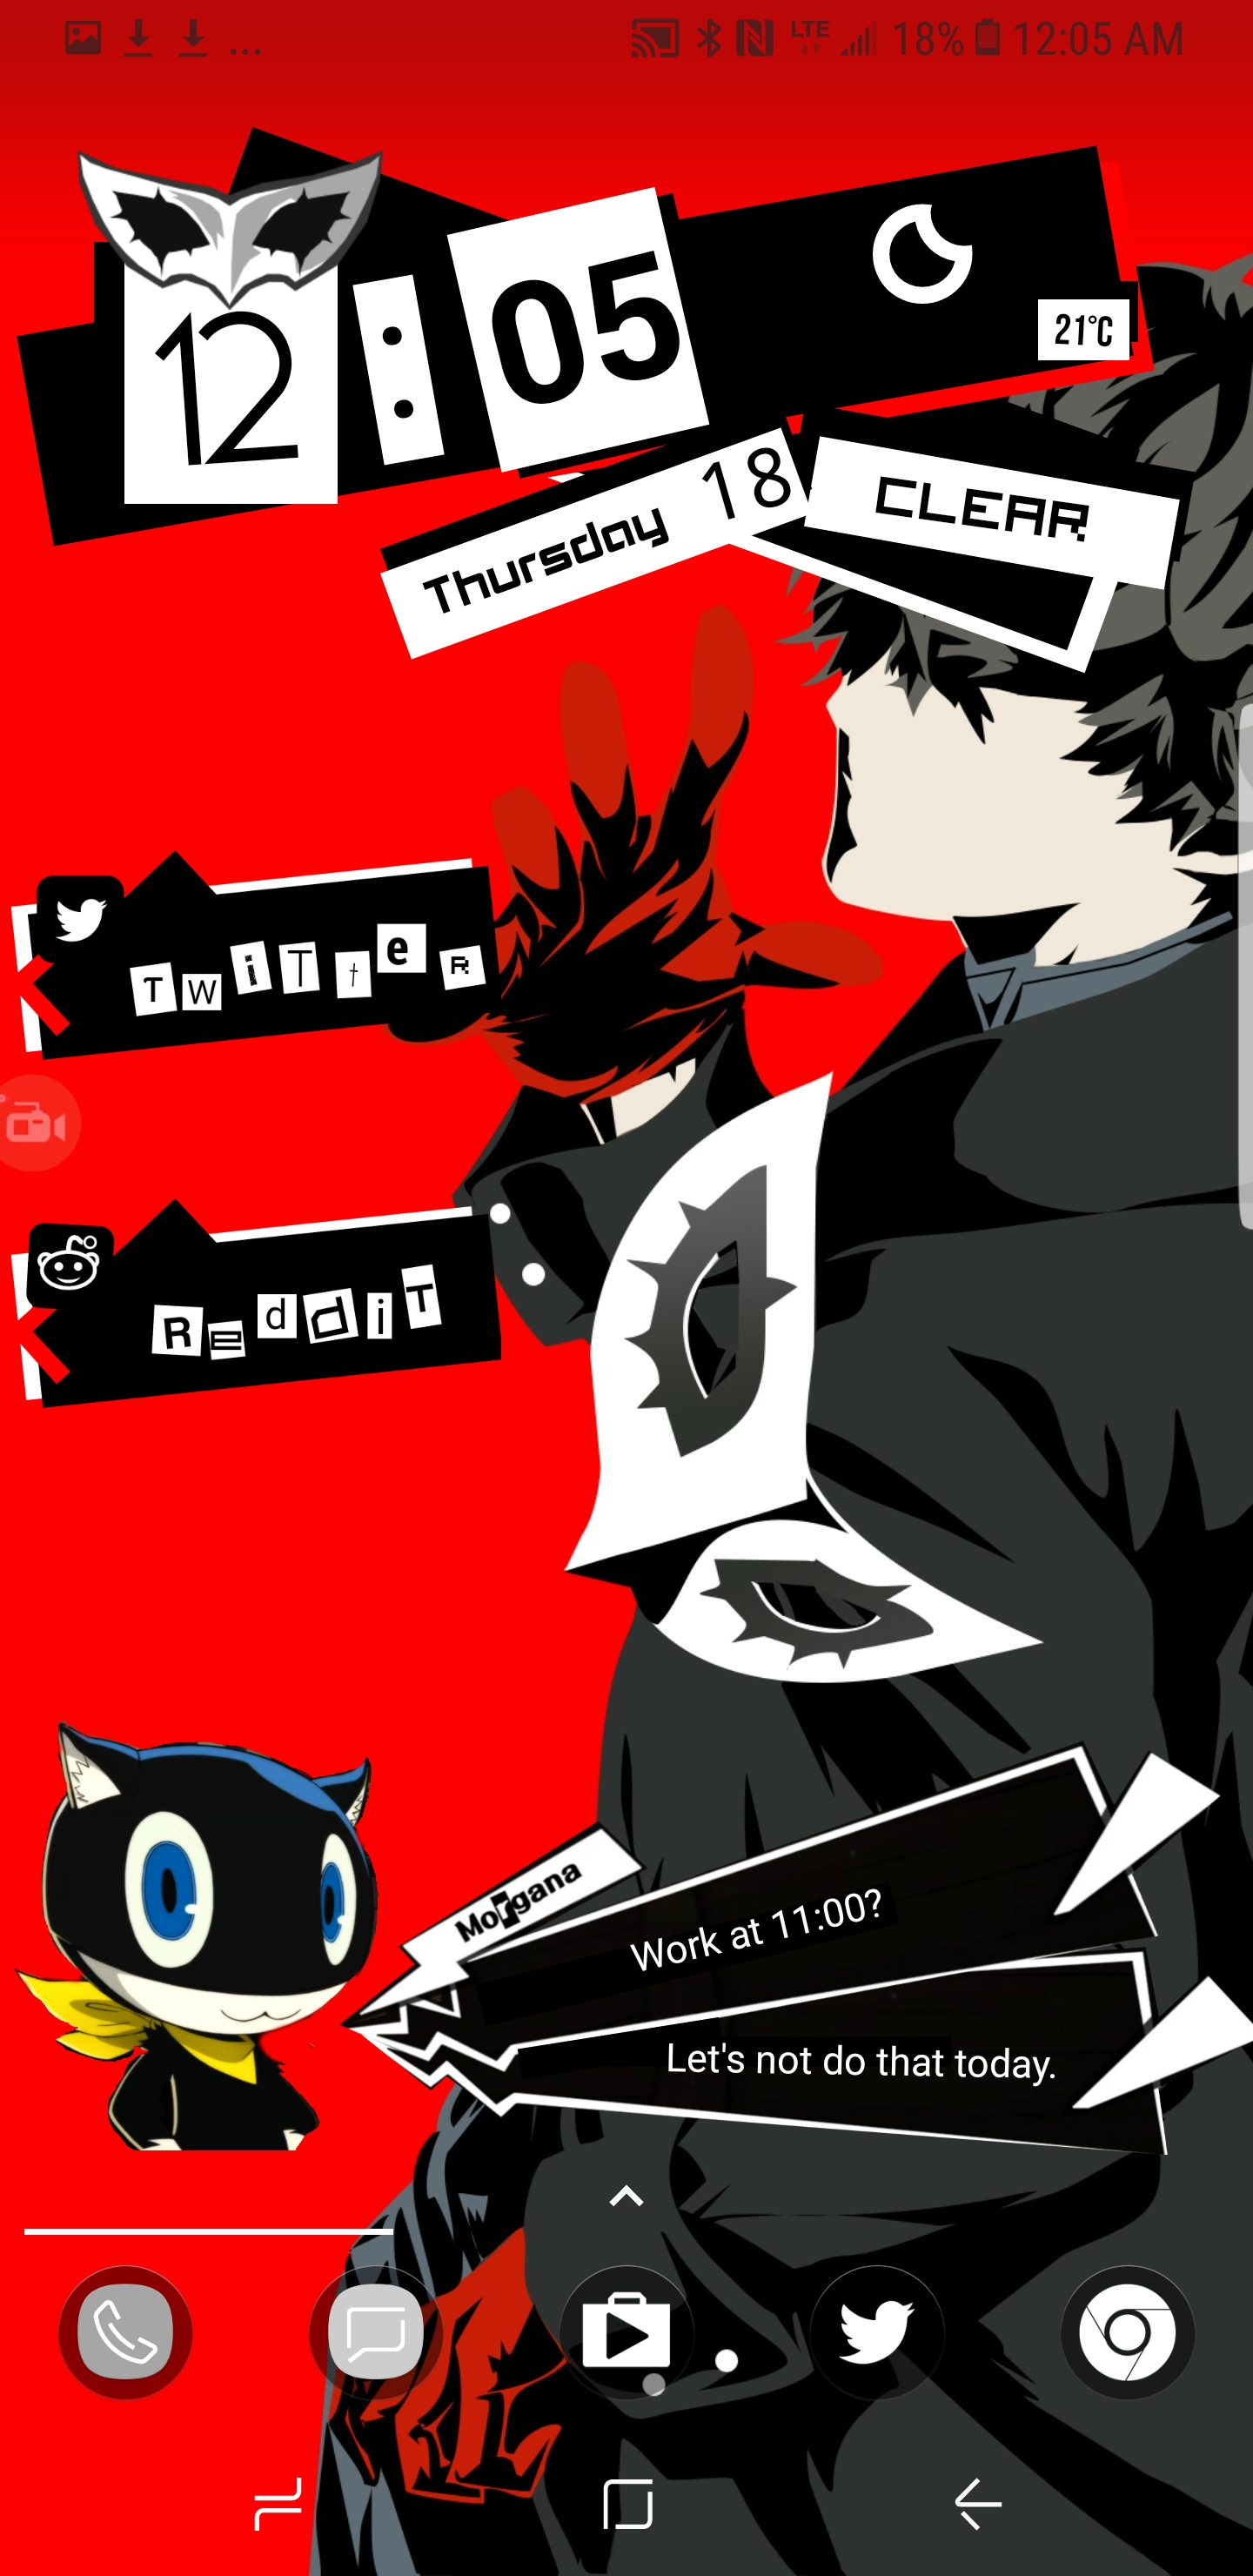 Morgana Calendar Widget For Android – Adding On To Previously Posted Persona 5 Calendar 2019